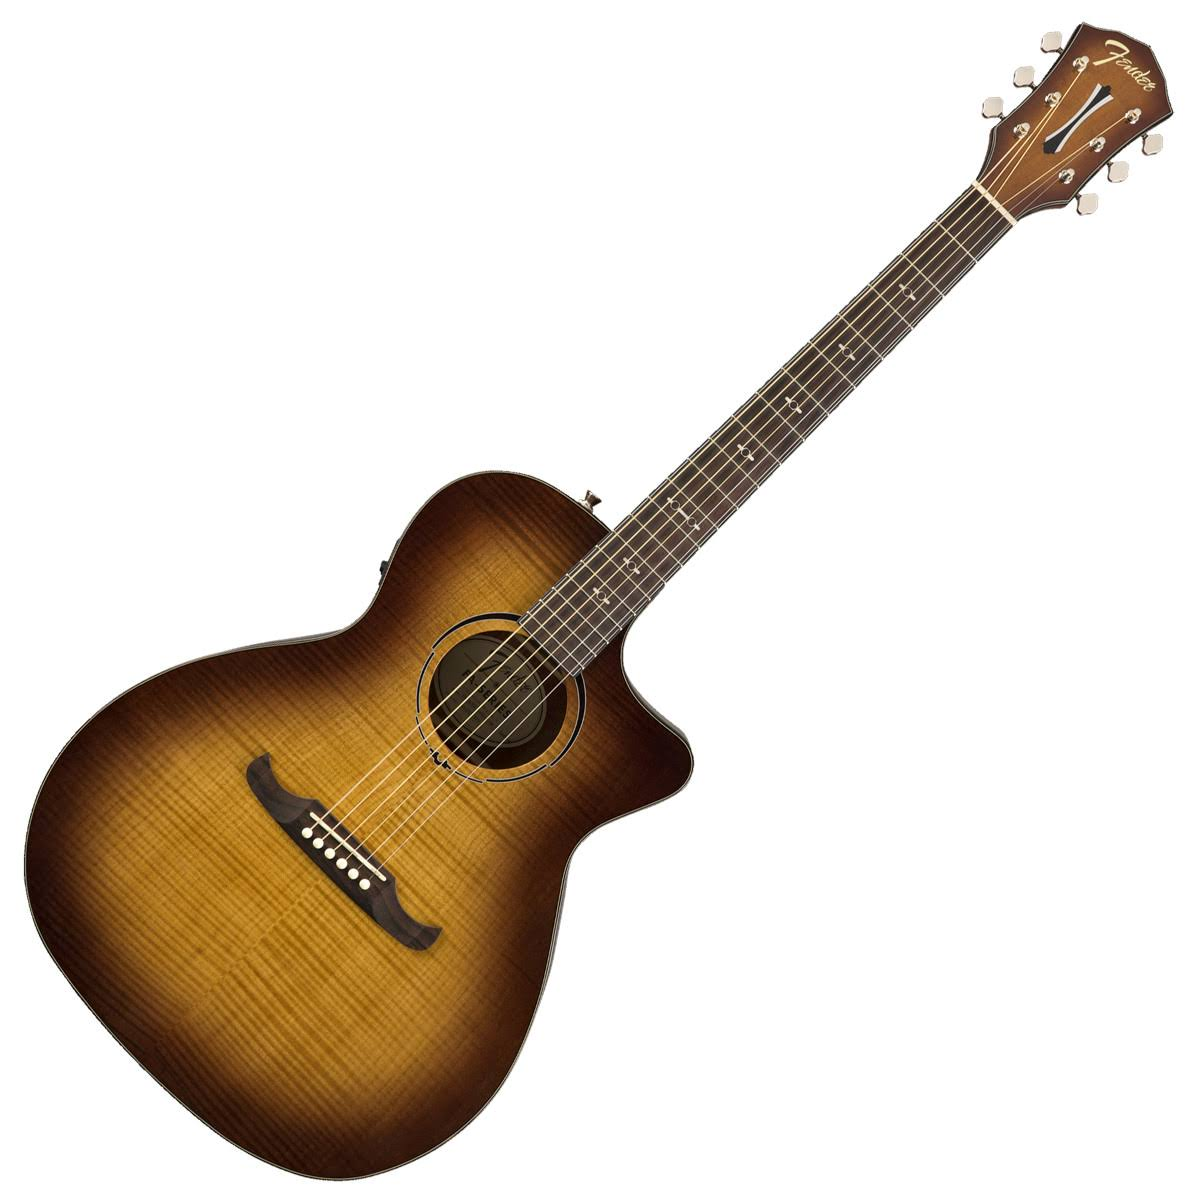 Fender Auditorium Acoustic Eelectric Guitar - 3 Tone Teaburst